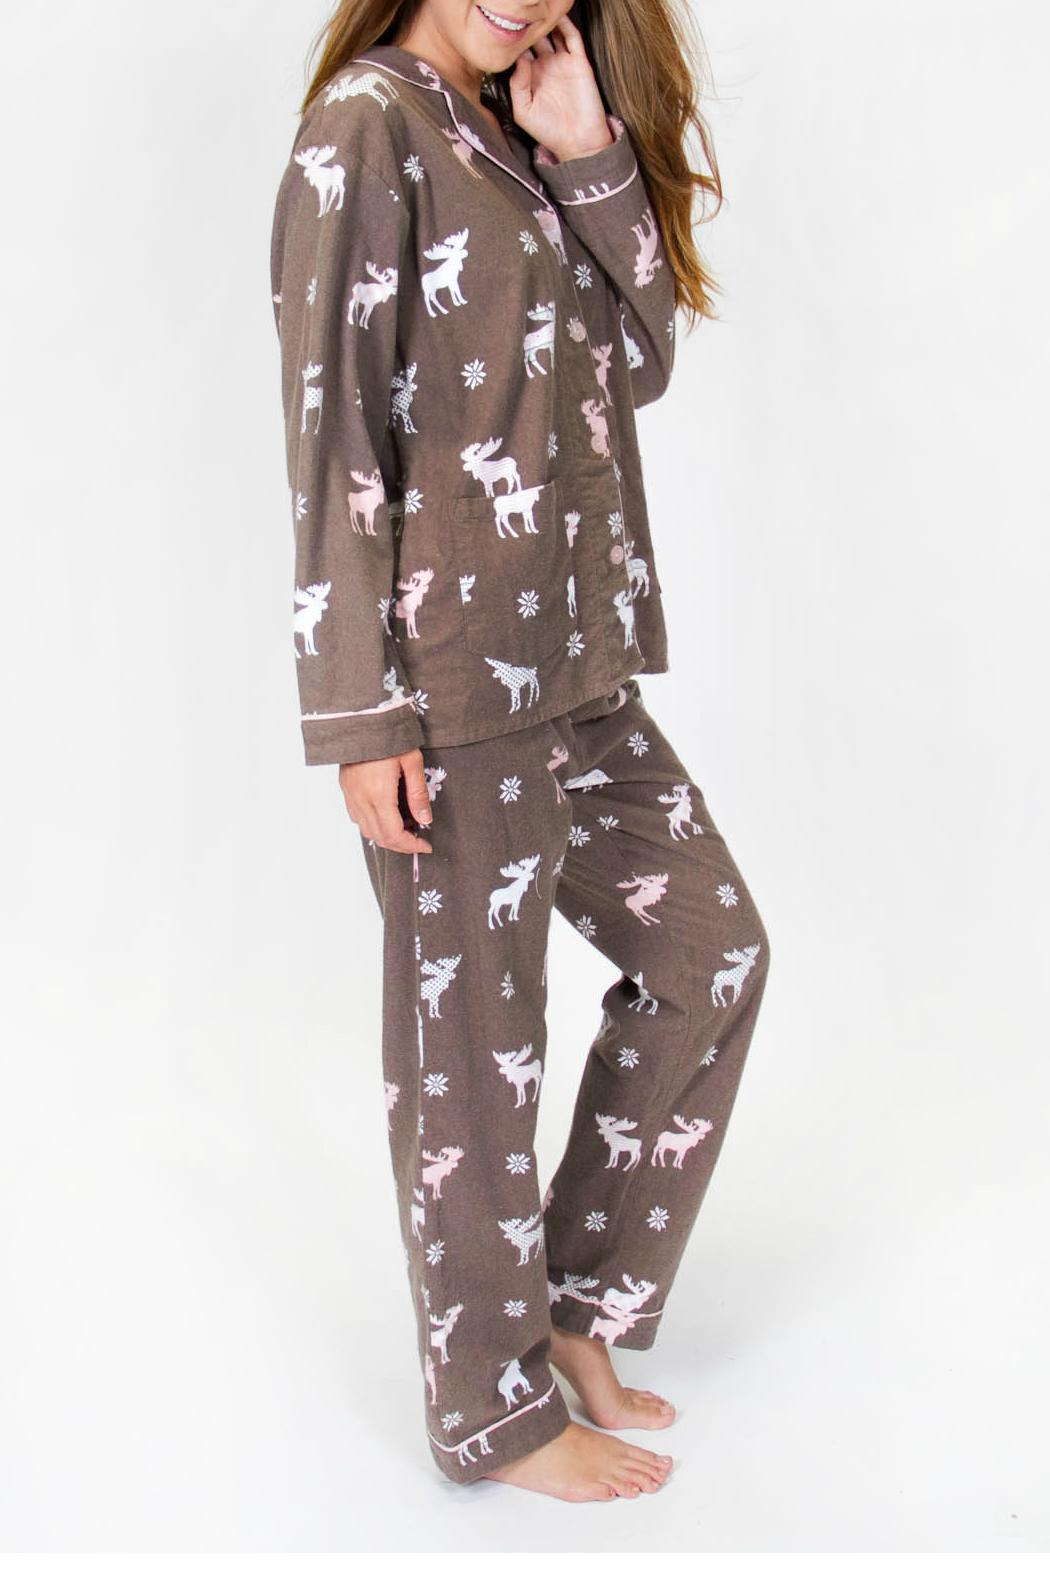 P J Salvage Moose Flannel Pajama From Canada By Blue Sky